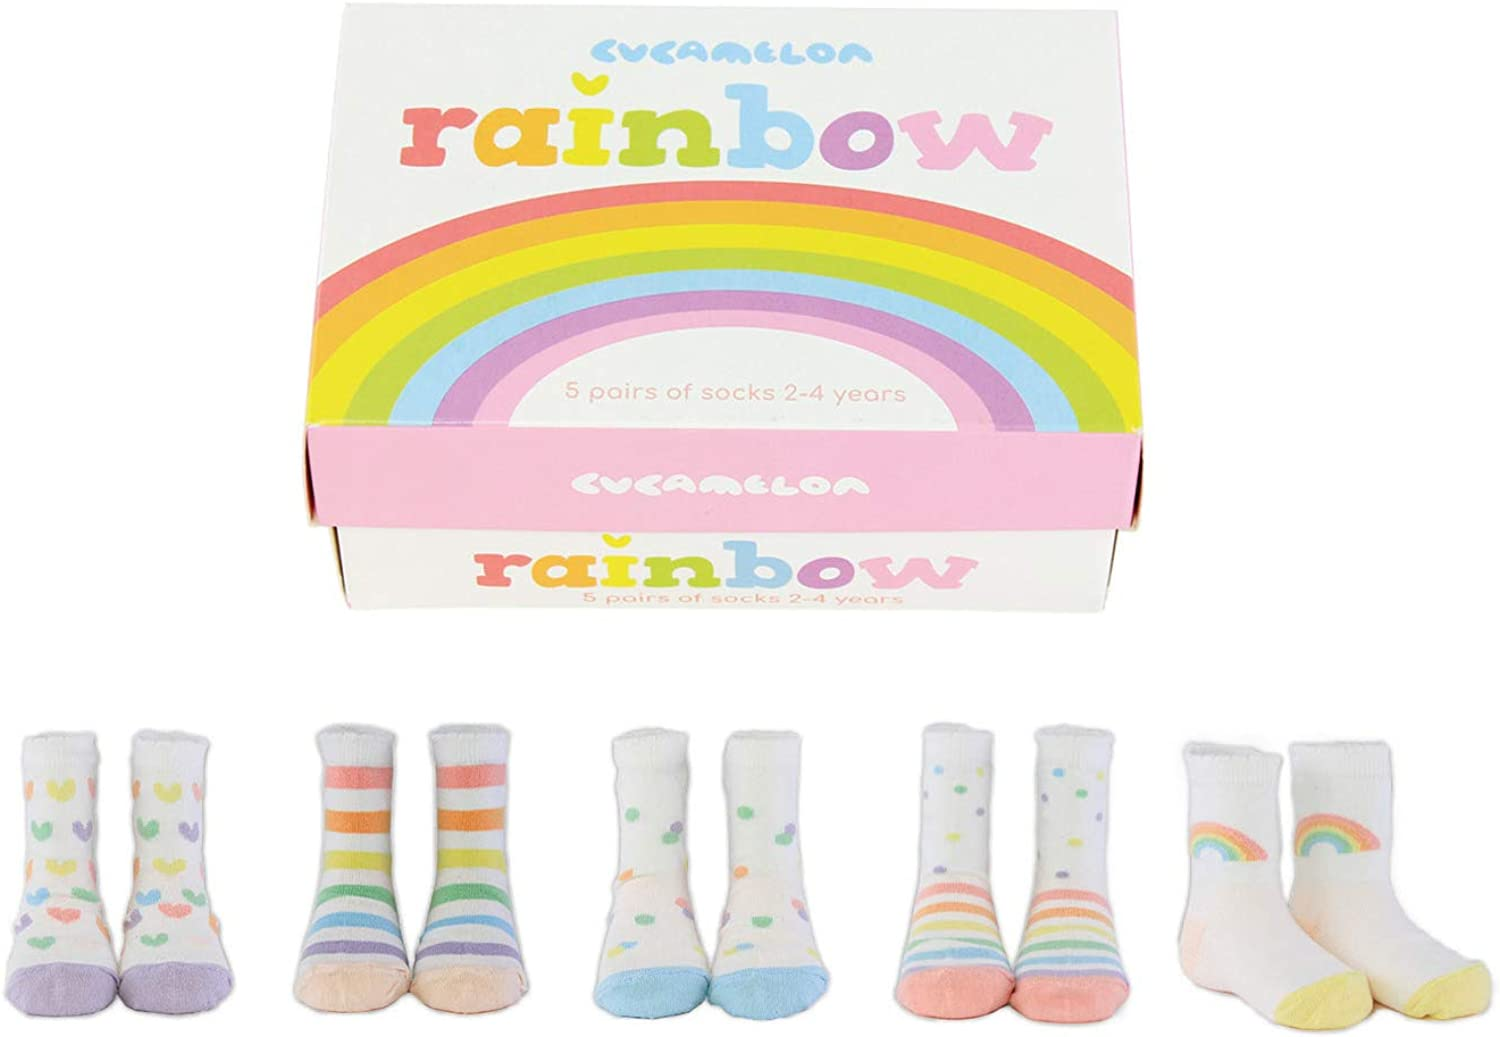 Cucamelon Rainbow 5 Pairs of Toddler Socks 2-4 Years Toddler Giftboxed